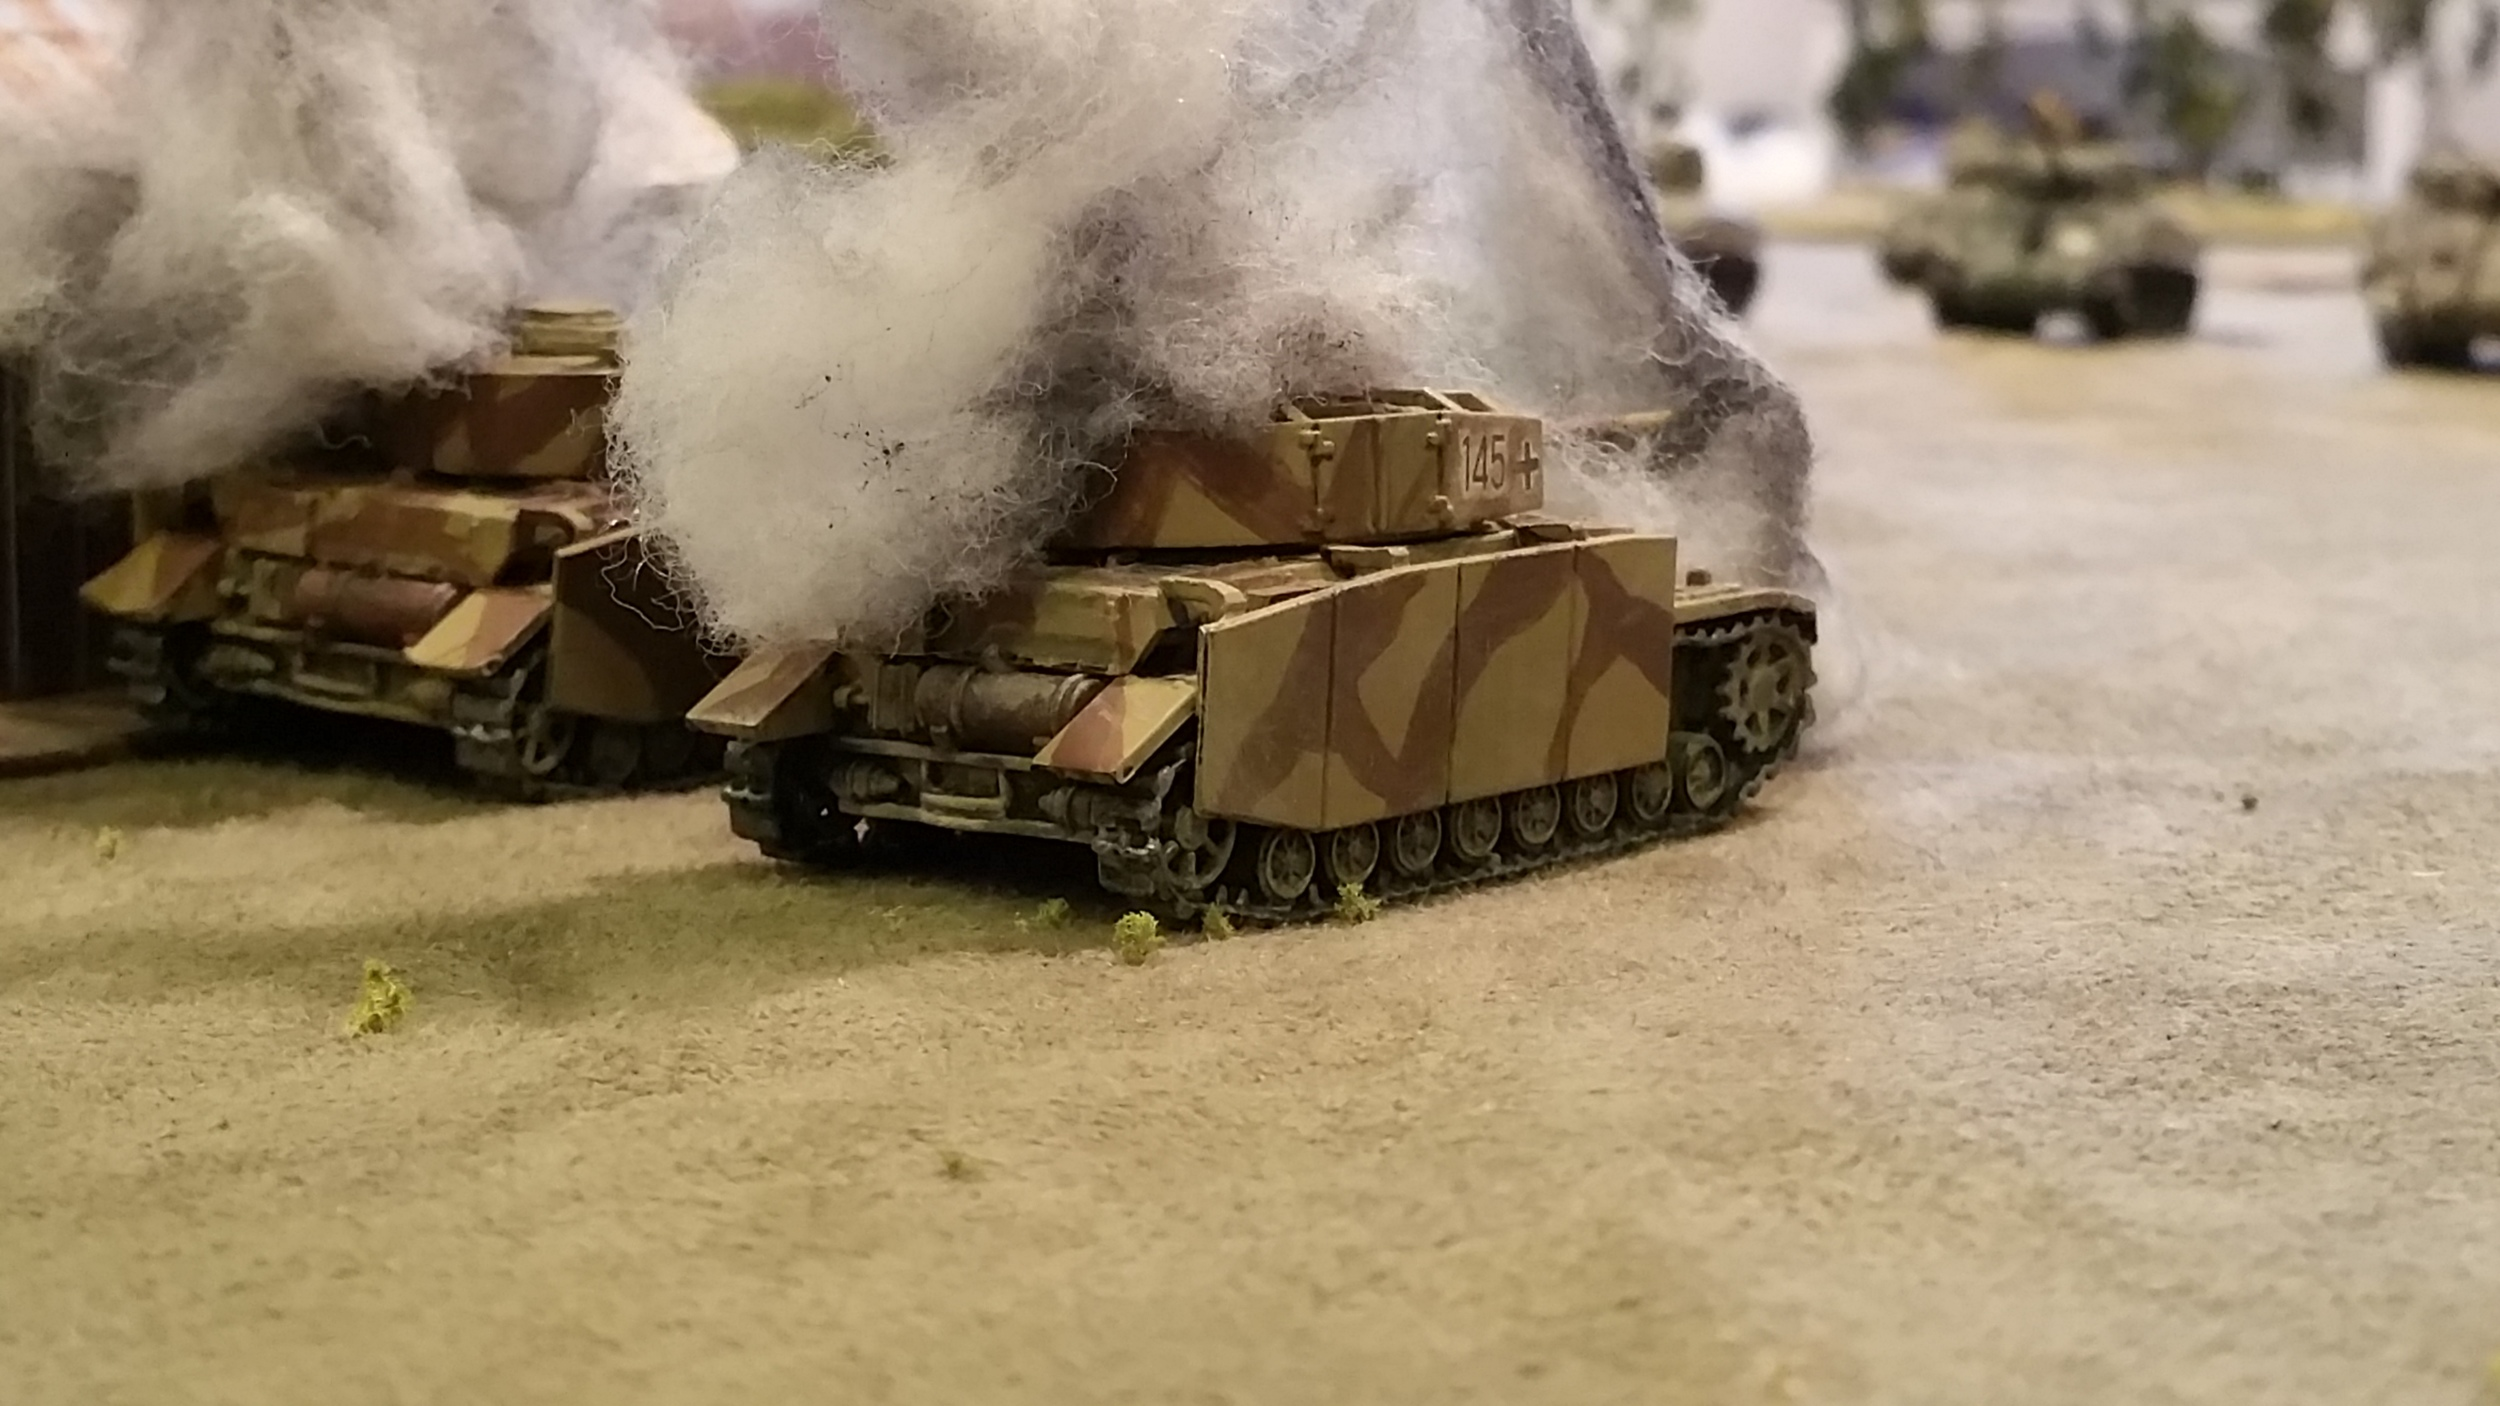 panzer ivs can't stem the tide